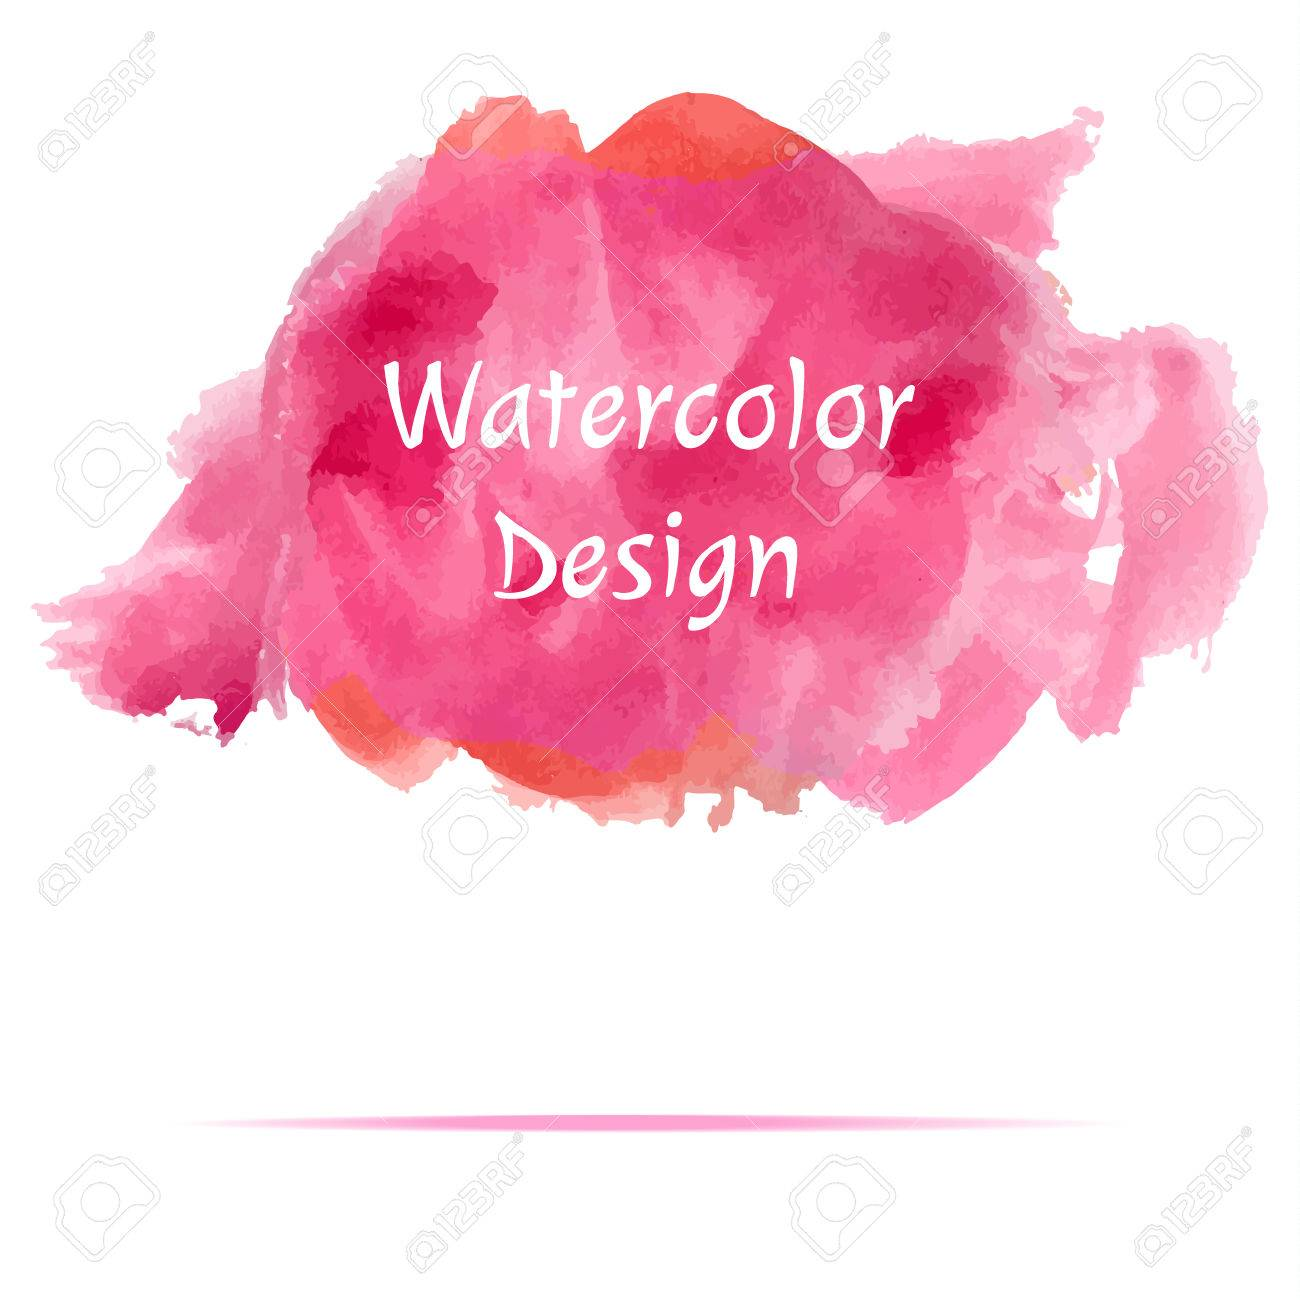 Background Vector Colourful Commercial Watercolor White Design Sky Illustration Graphic Wallpaper Industry Cloud Isolated Paper Outdoor